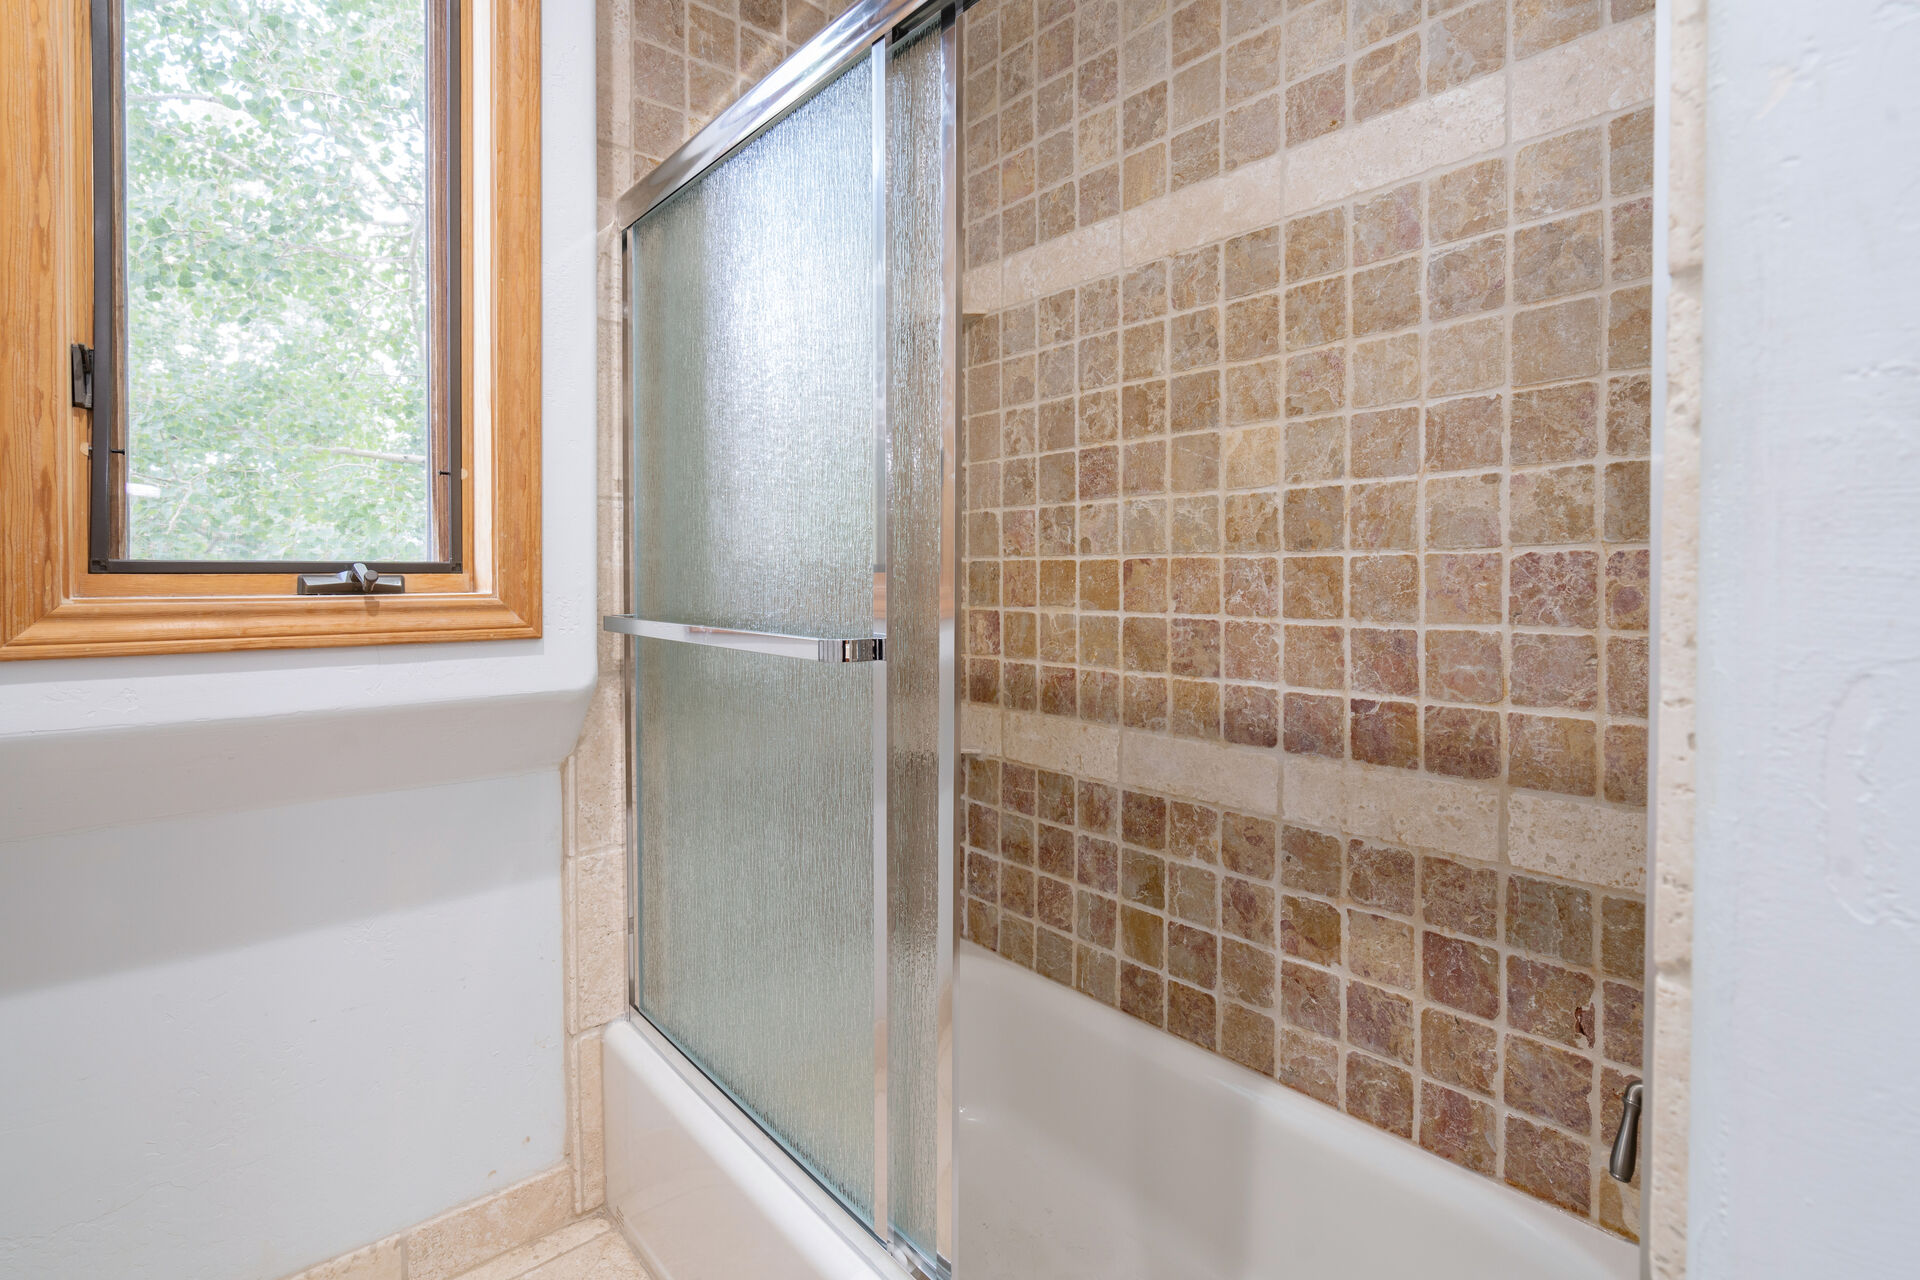 Brown tile tub and shower in bathroom